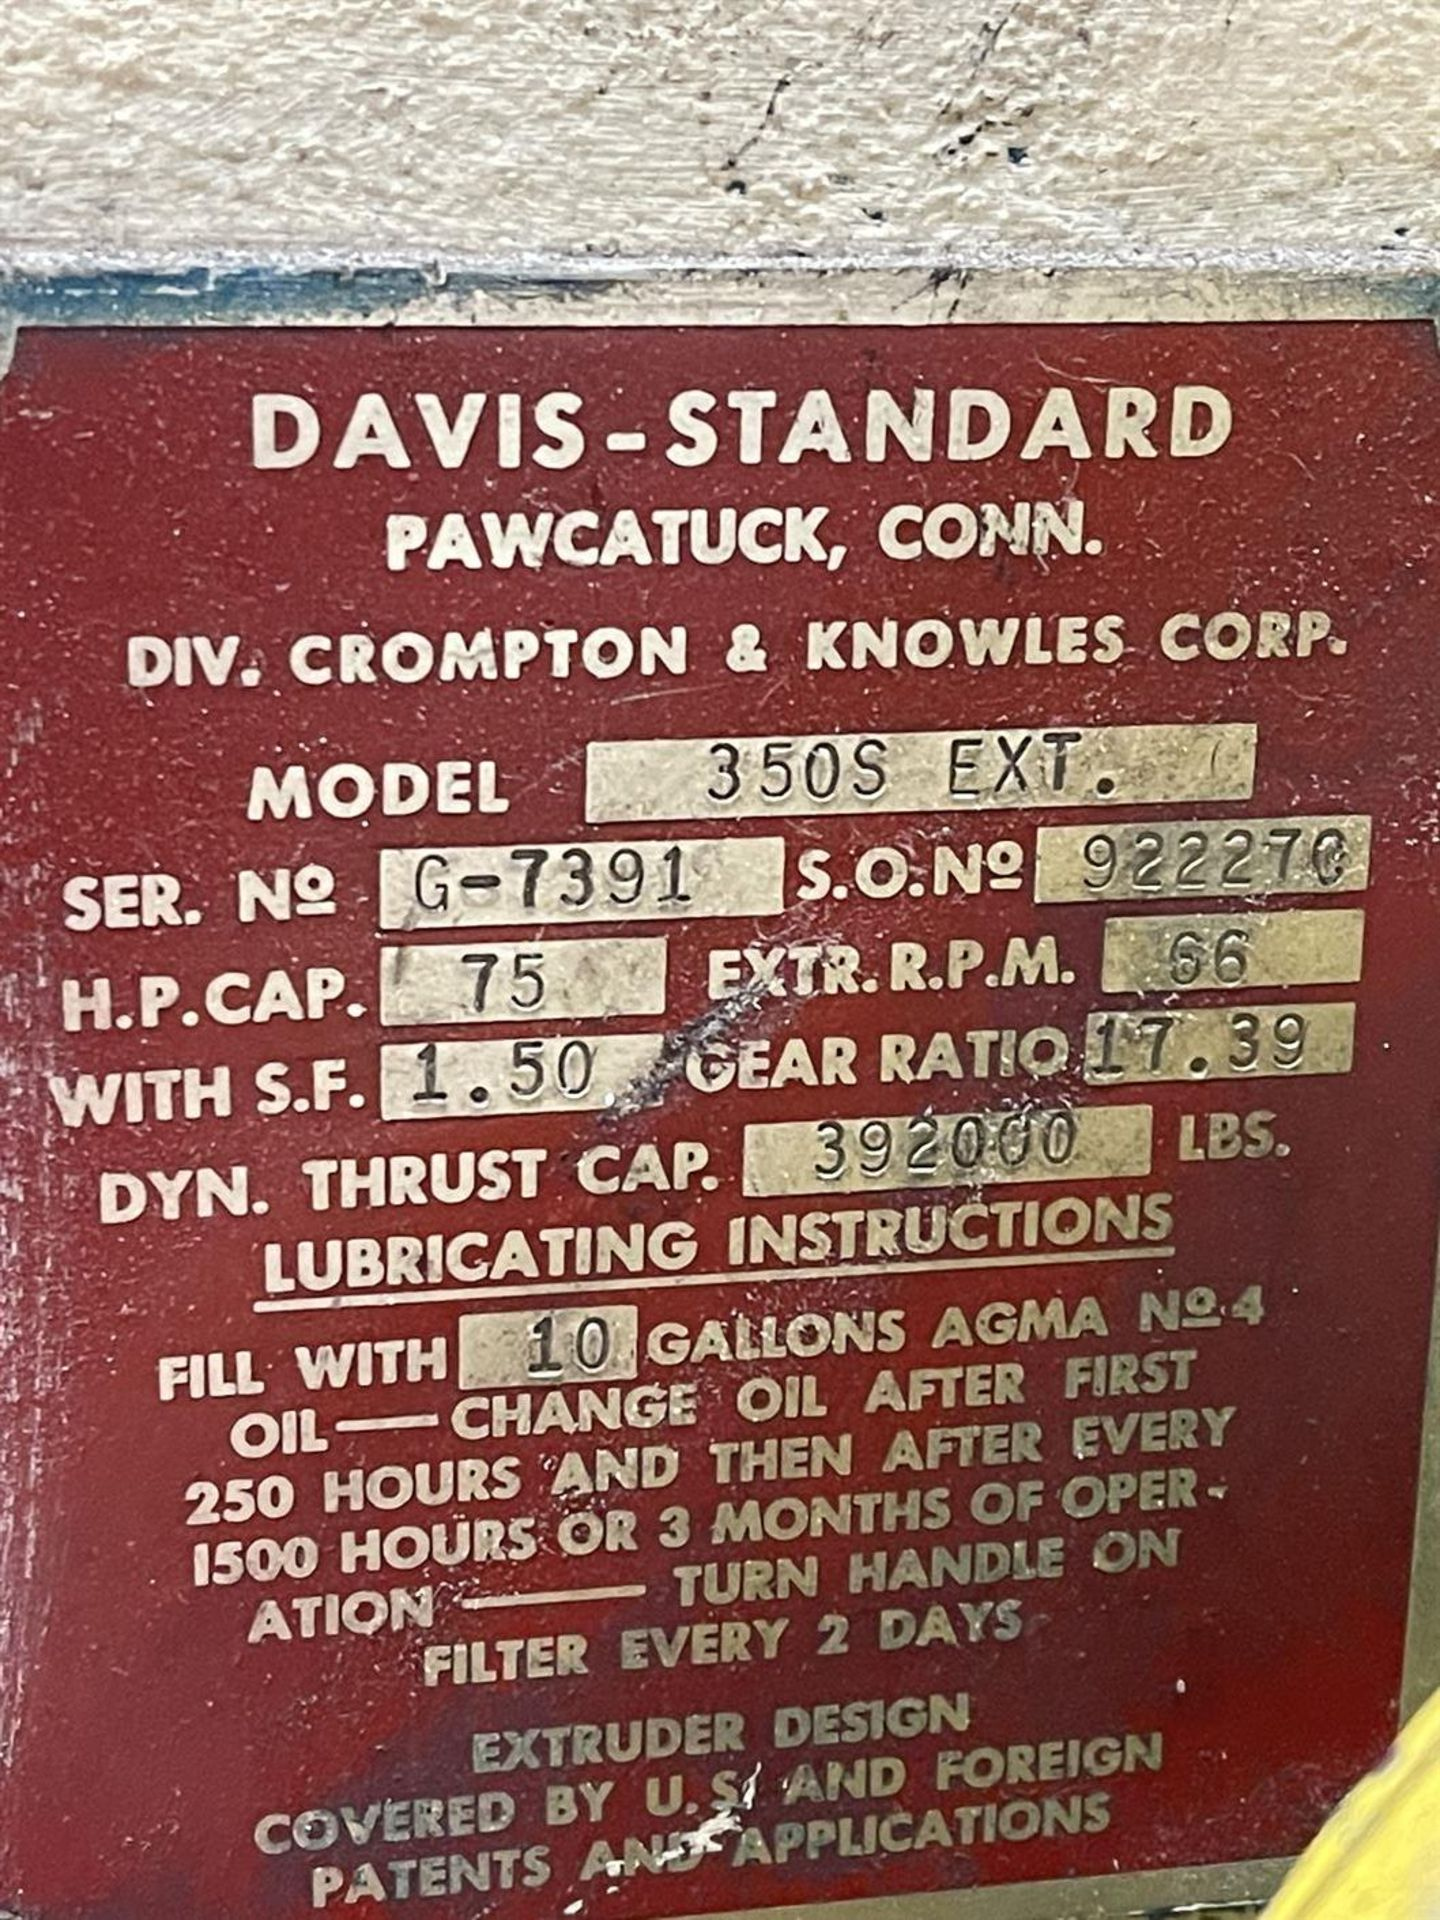 """DAVIS-STANDARD 350S 3.5"""" Extruder, s/n G-7391, 35IN35, 17.39 Gear Ratio, 75HP, 66 RPM, (Side Head - Image 6 of 7"""